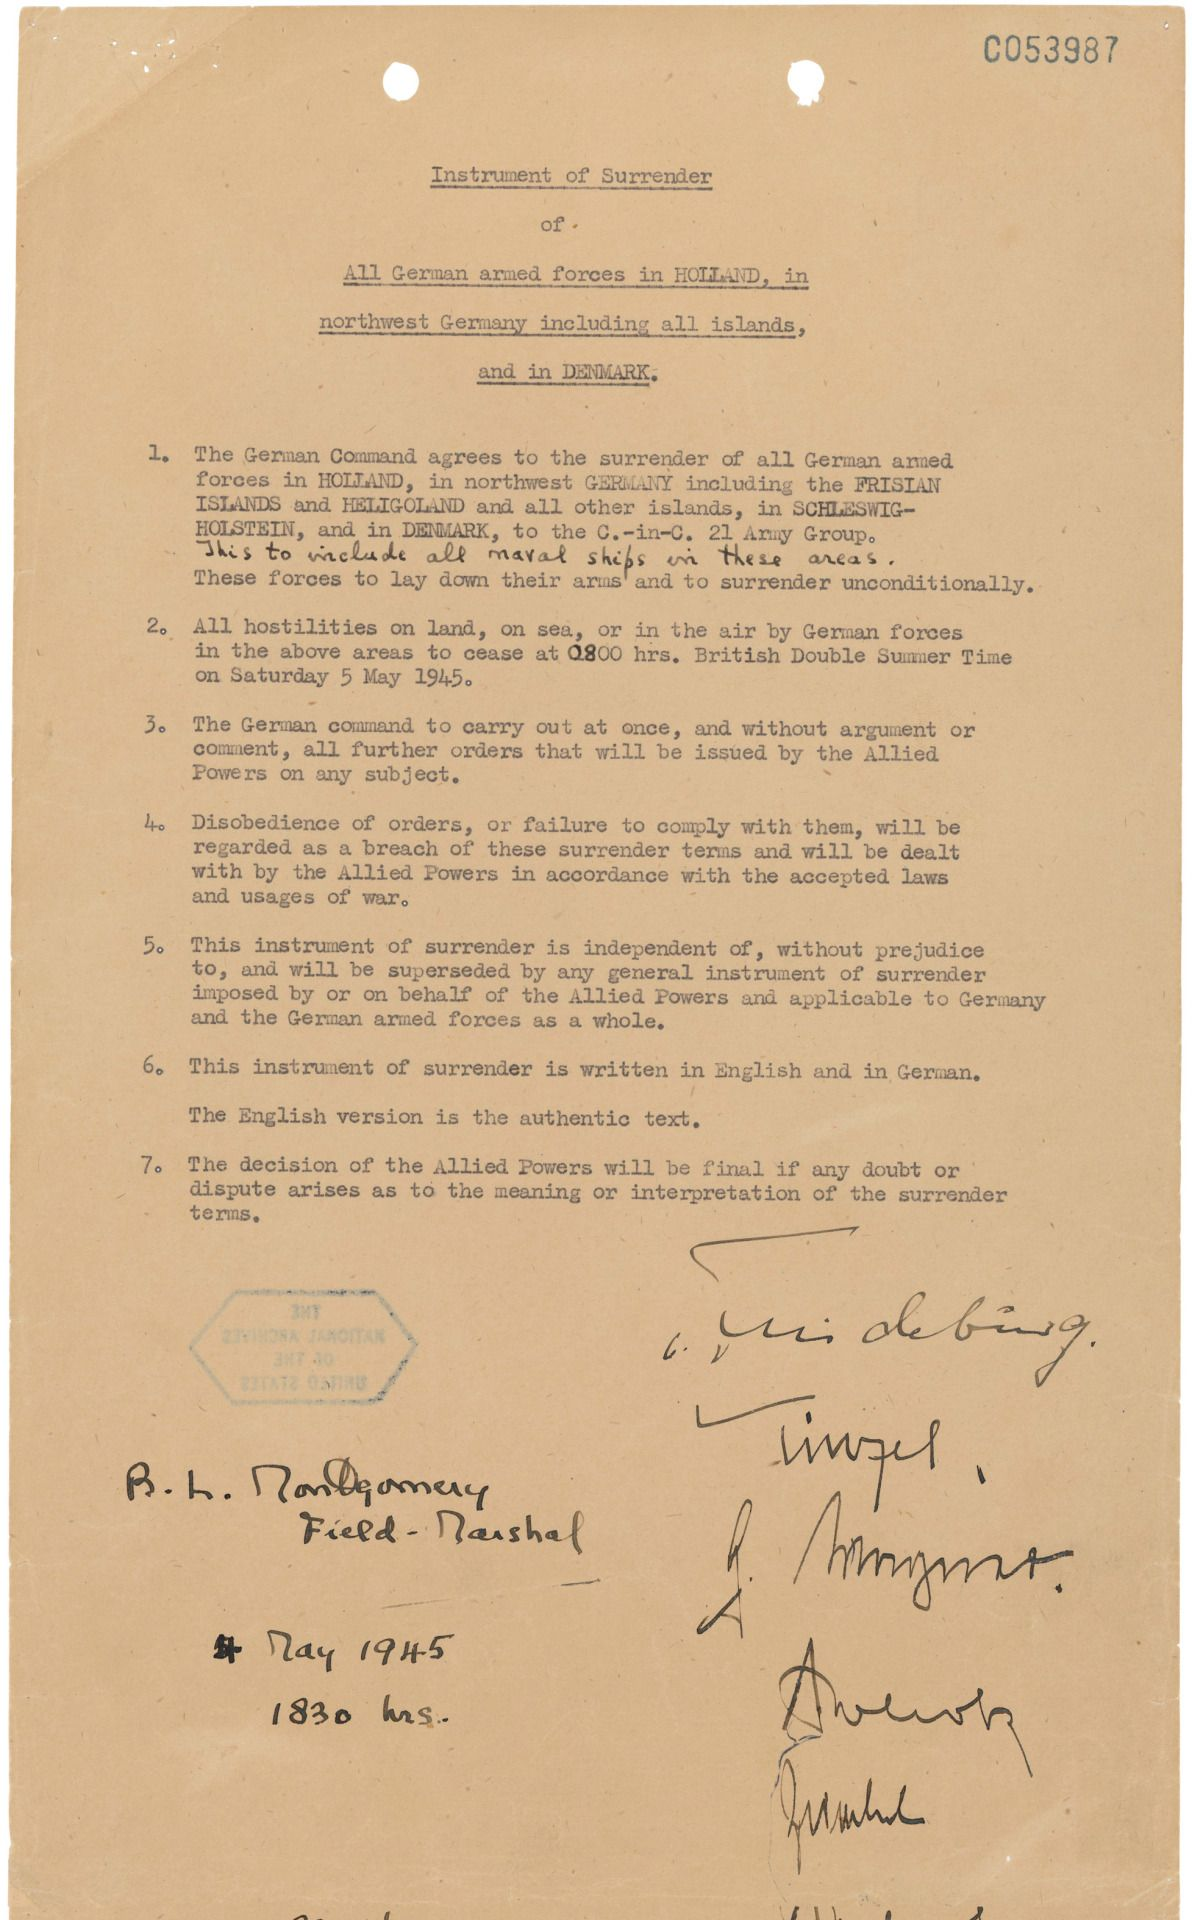 Instrument Of Surrender Of All German Armed Forces In Holland In